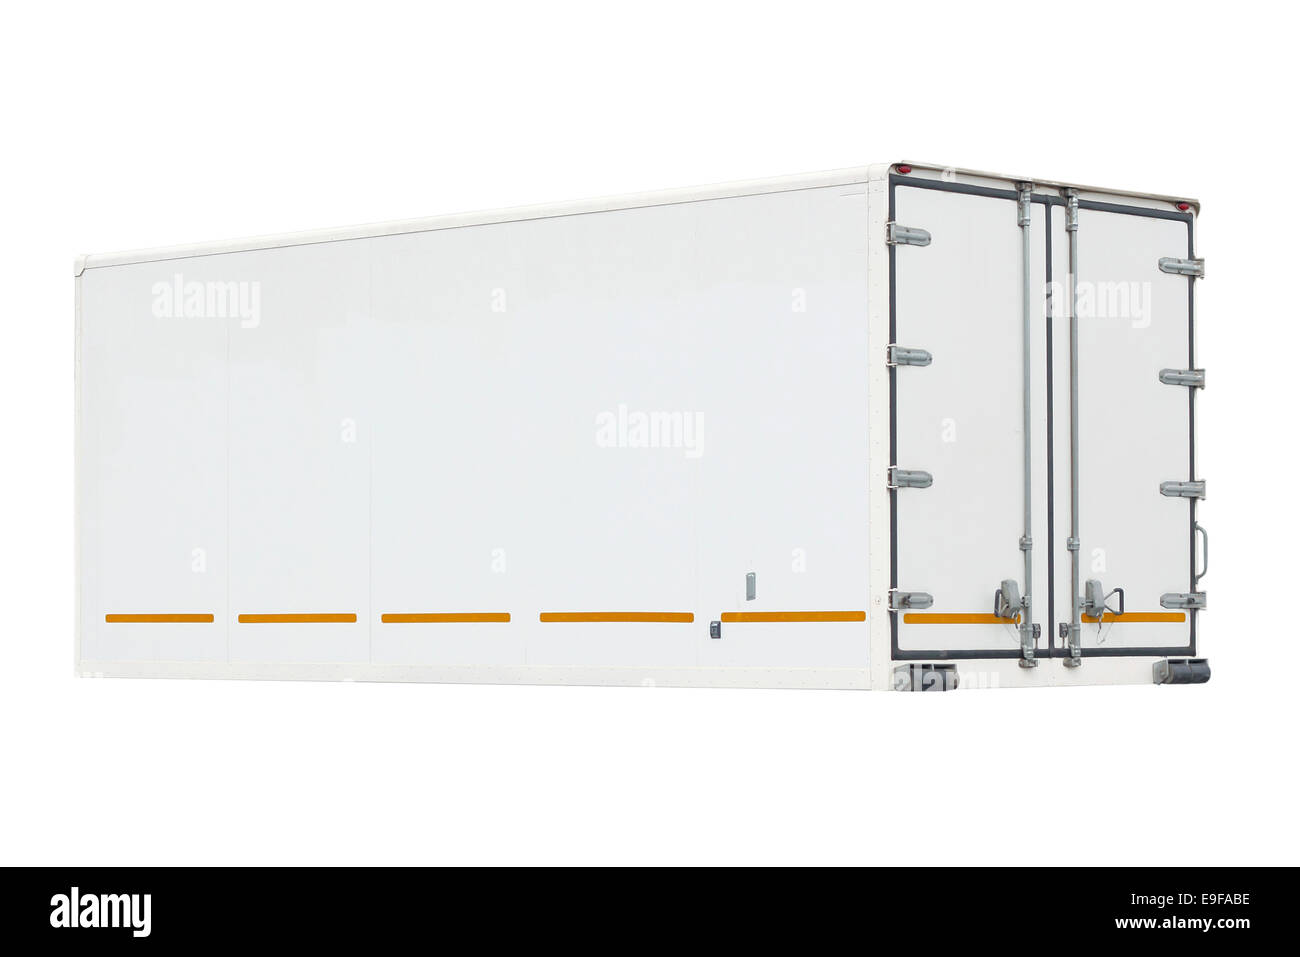 container on a white background. - Stock Image